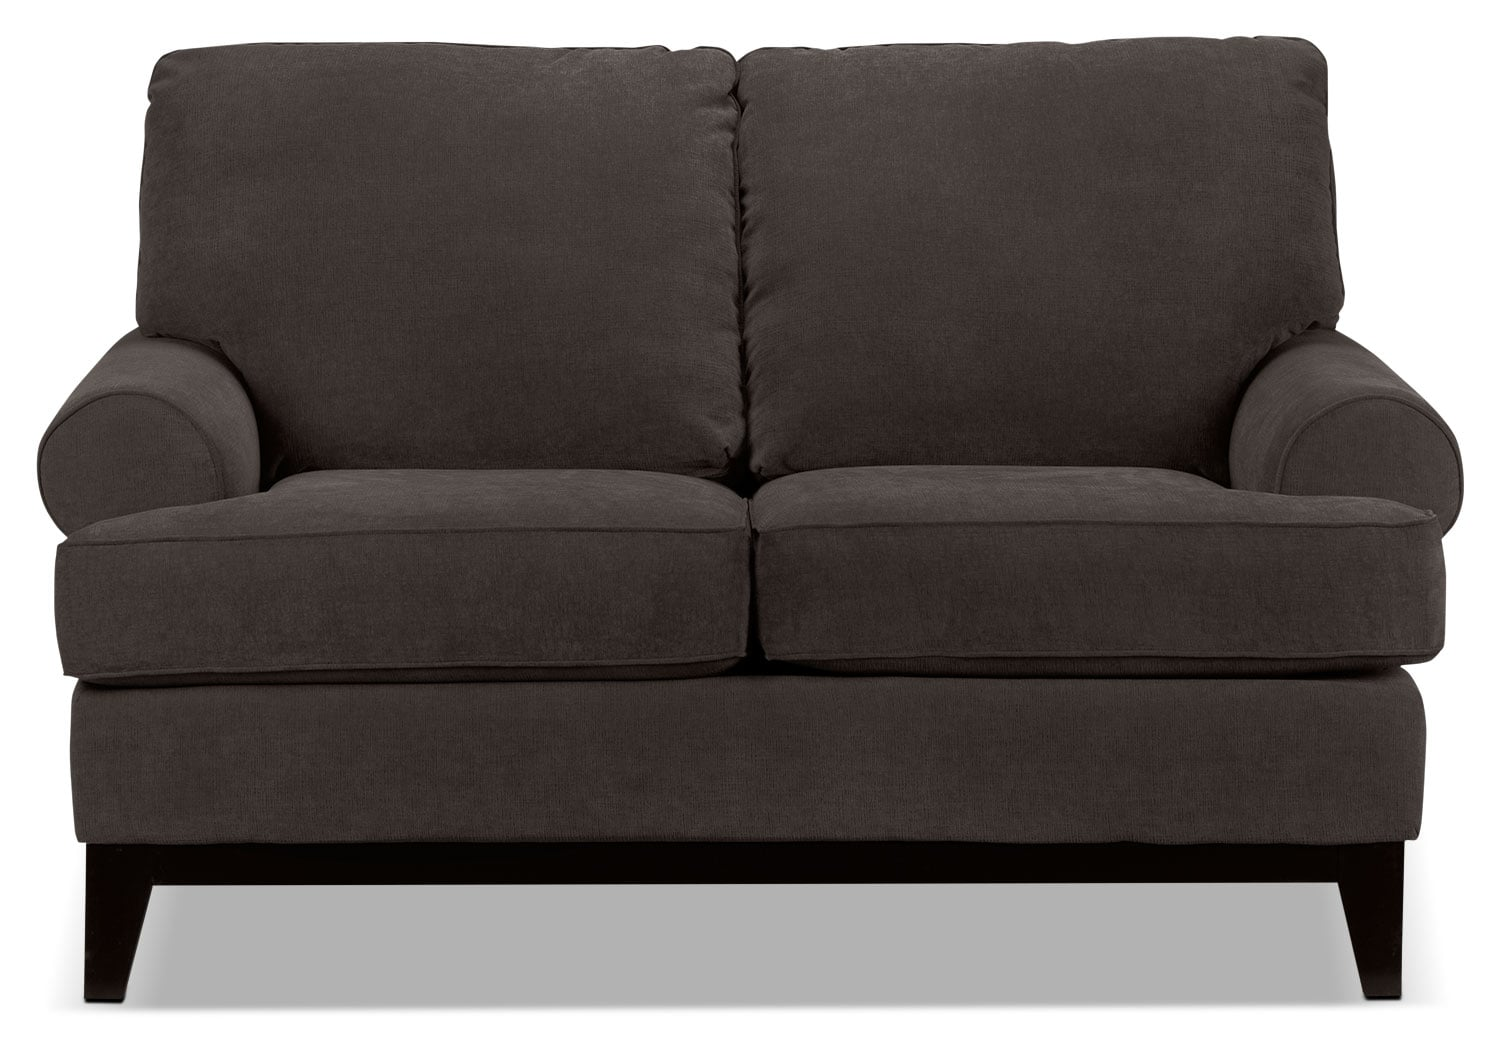 Living Room Furniture - Crizia Loveseat - Coffee